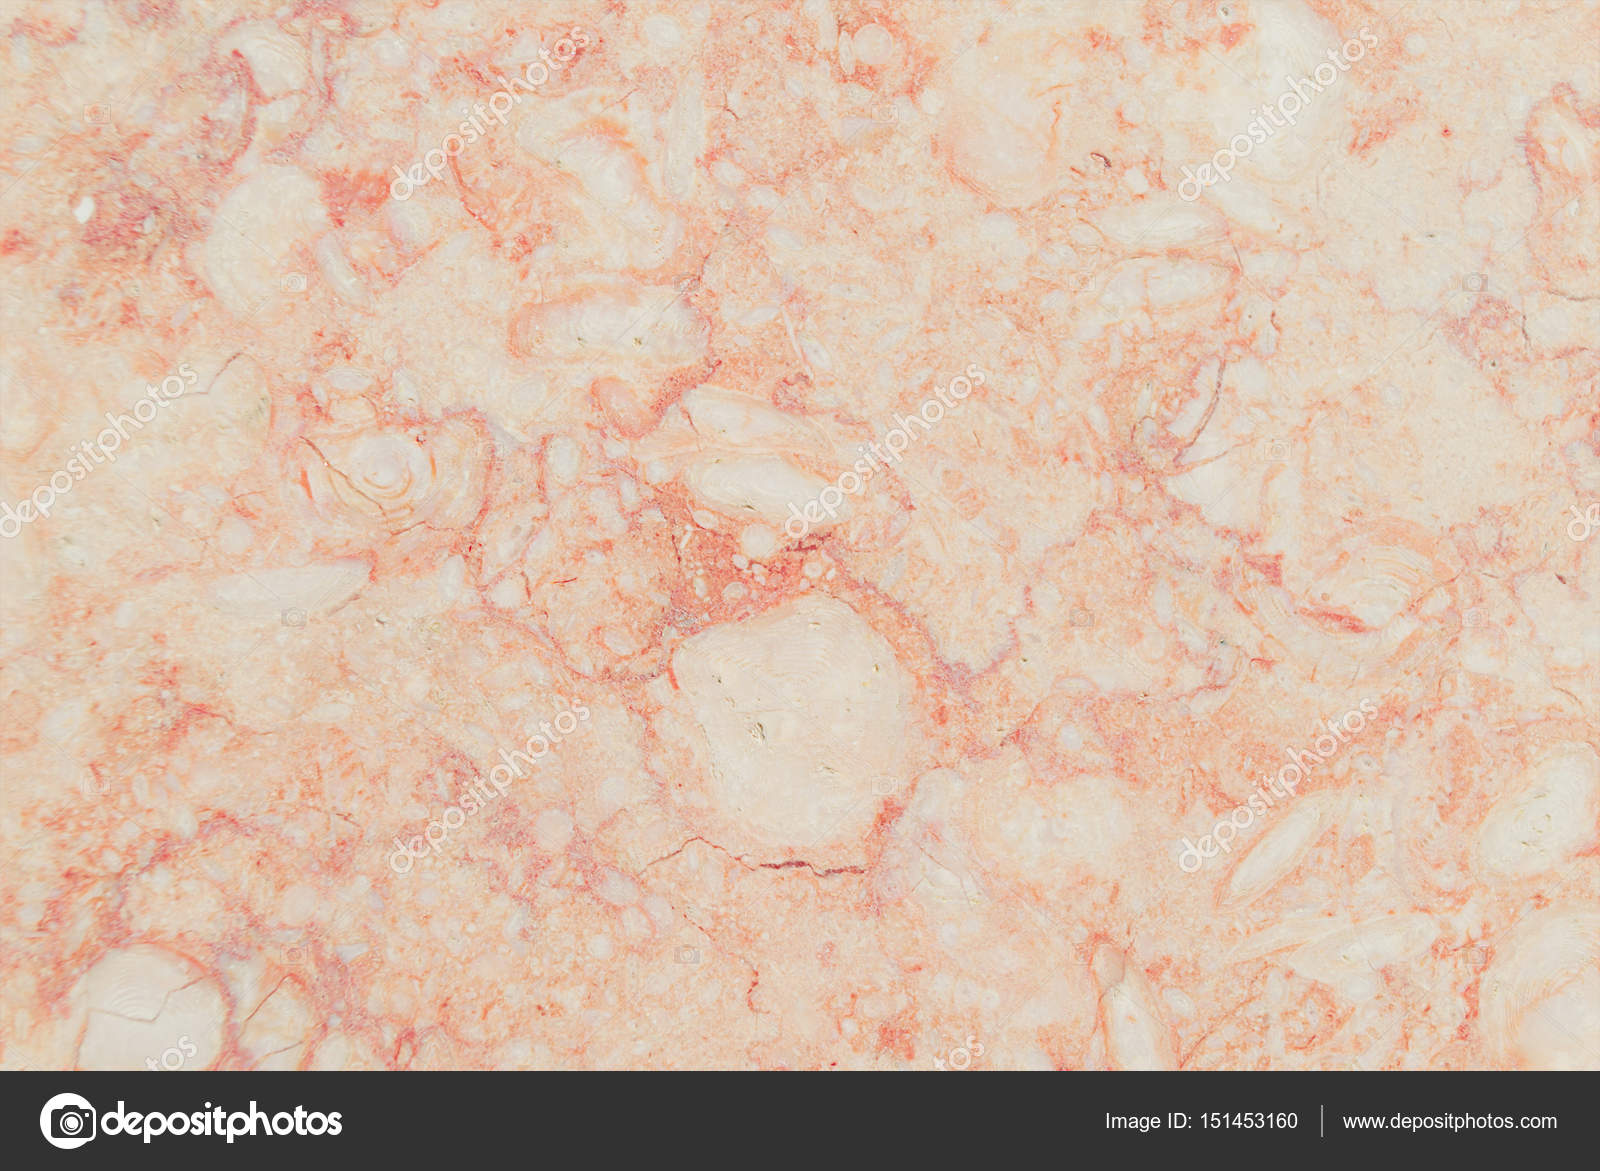 Most Inspiring Wallpaper Marble Text - depositphotos_151453160-stock-photo-pink-marble-texture-background-luxury  Image_905145.jpg